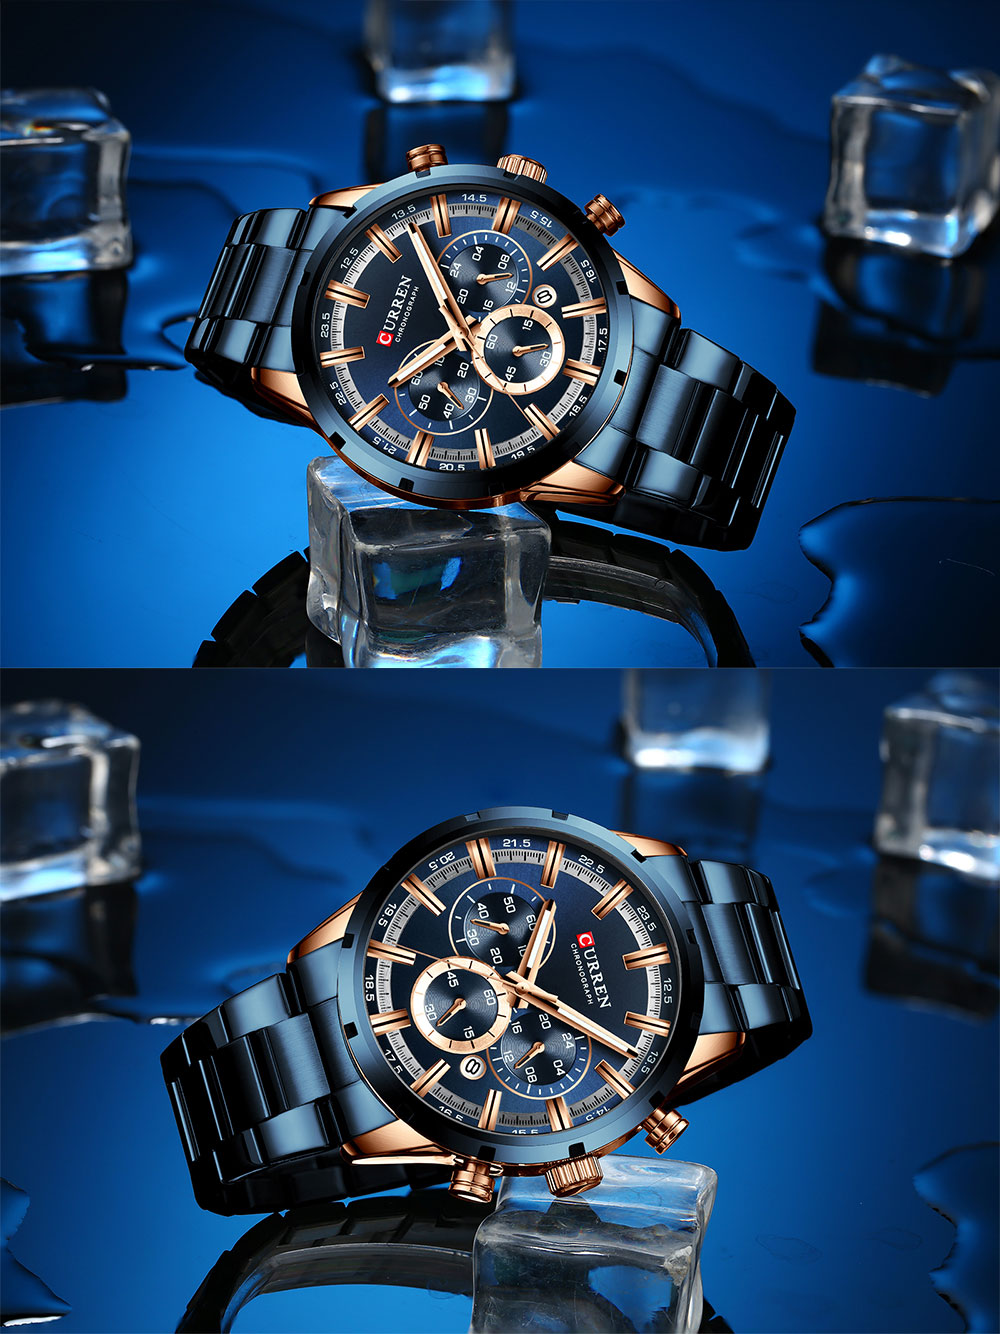 H7c1a397a2f5f4961b1f24d185e4633eez CURREN Top Brand Military Quartz Watches Silver Clock Mens Quartz Stainless Steel Chronograph Watch for Men Casual Sporty Watch